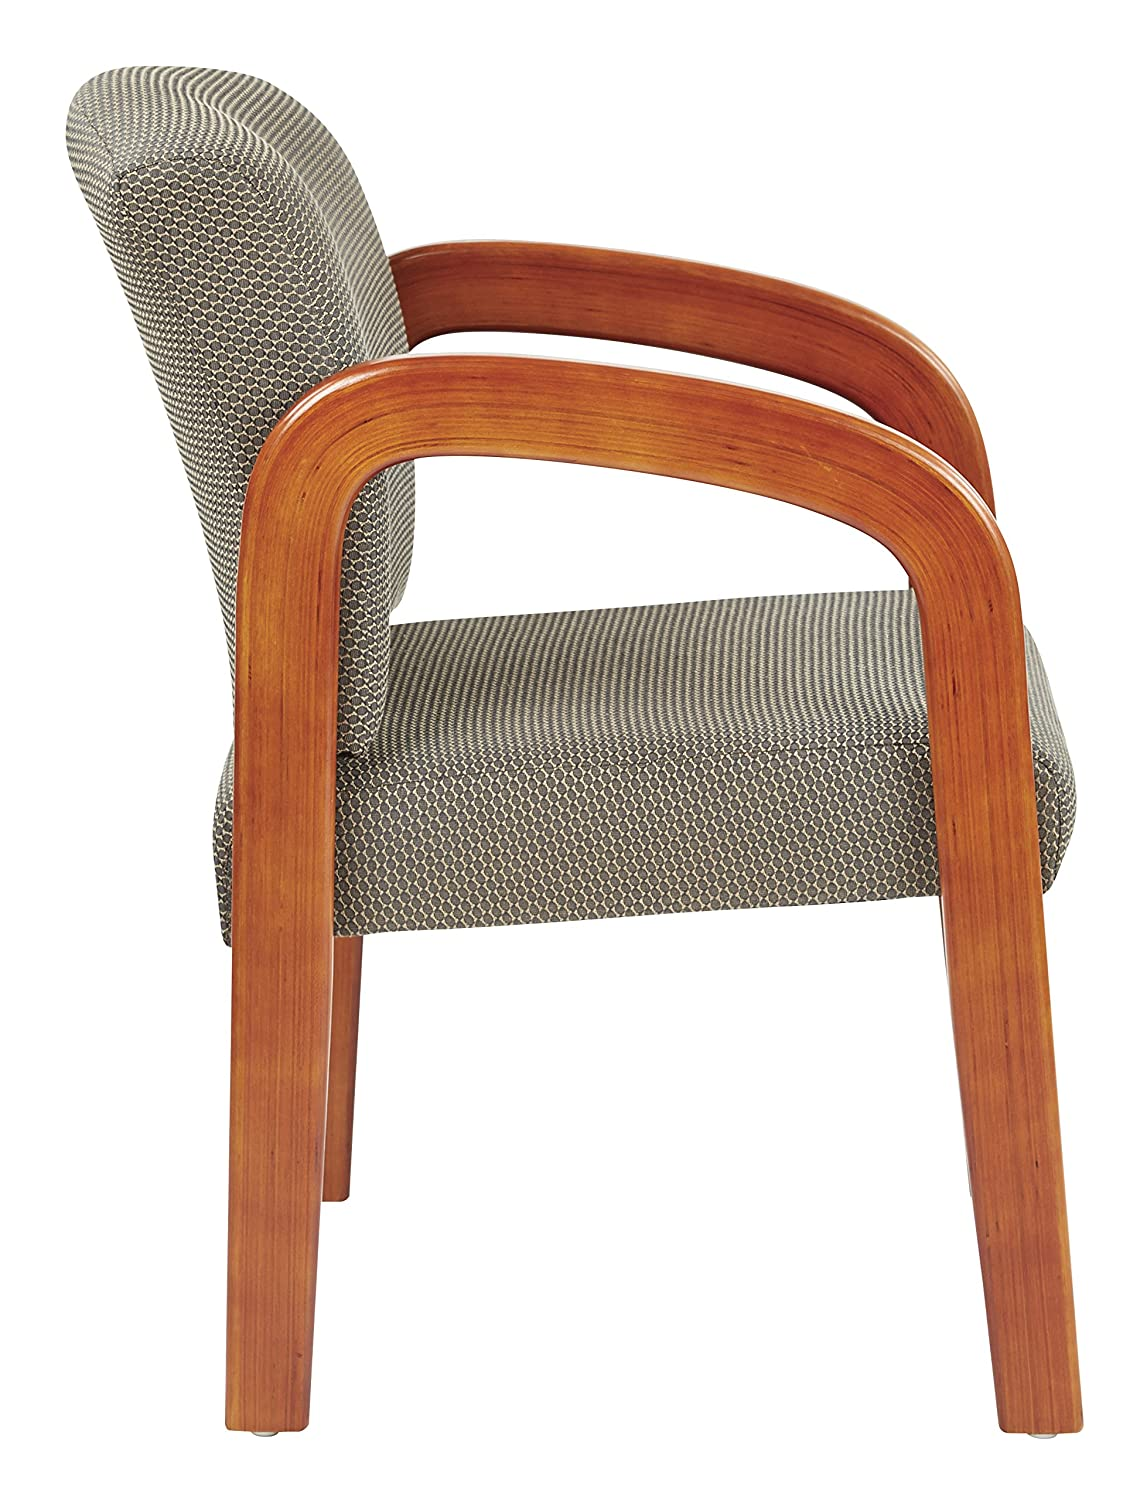 Office Star Products Office Star Products Wooden Guest and Reception Chair with Arms Medium Oak and Taupe